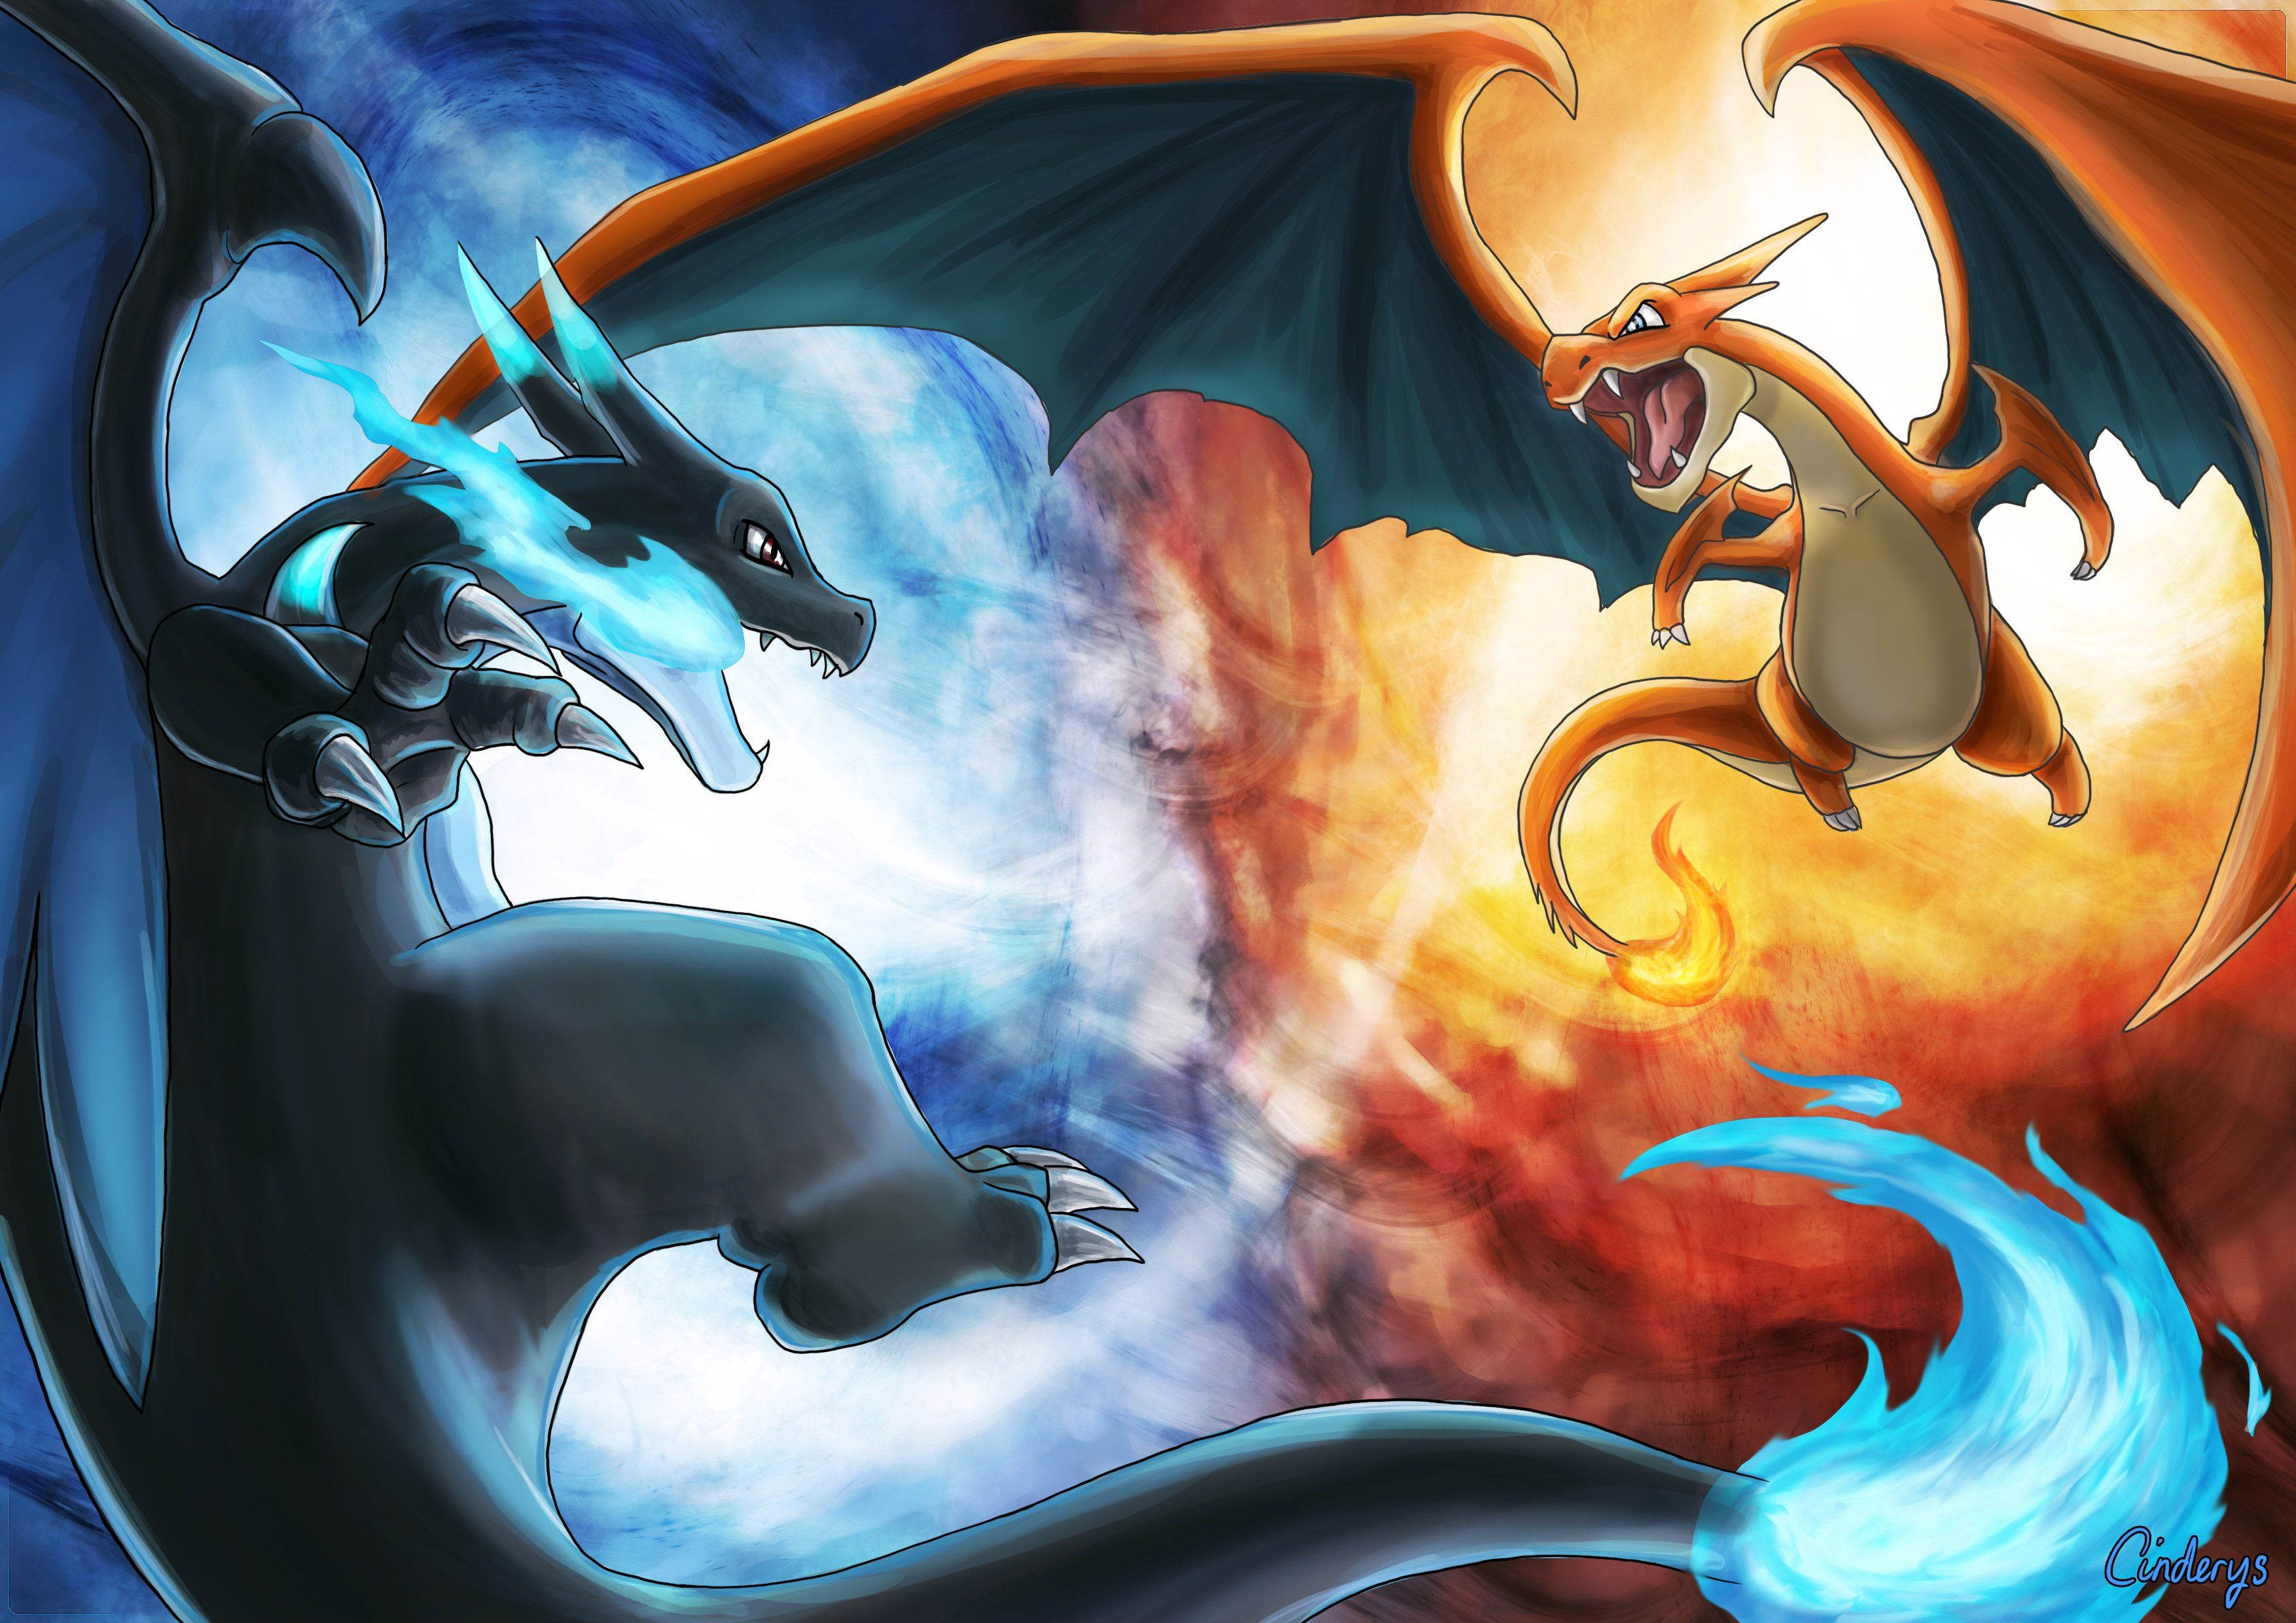 Pics Of Mega Charizard Posted By Ethan Johnson